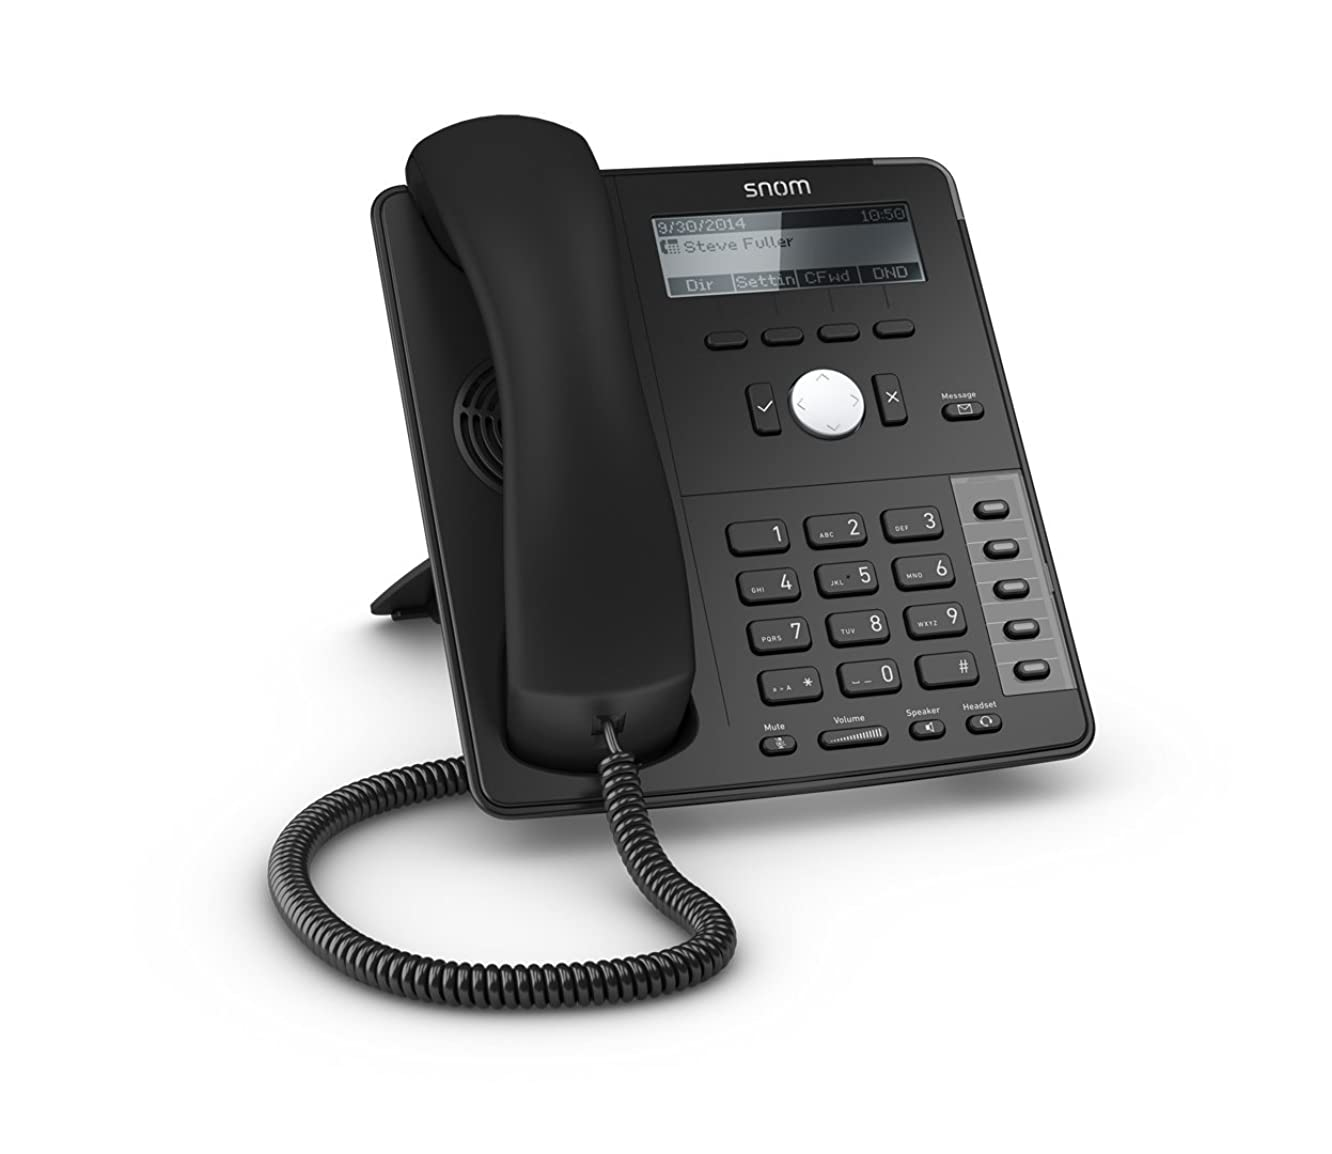 Snom SNO-D715 Professional Sip Desk Telephone Voip Phone and Device, Black